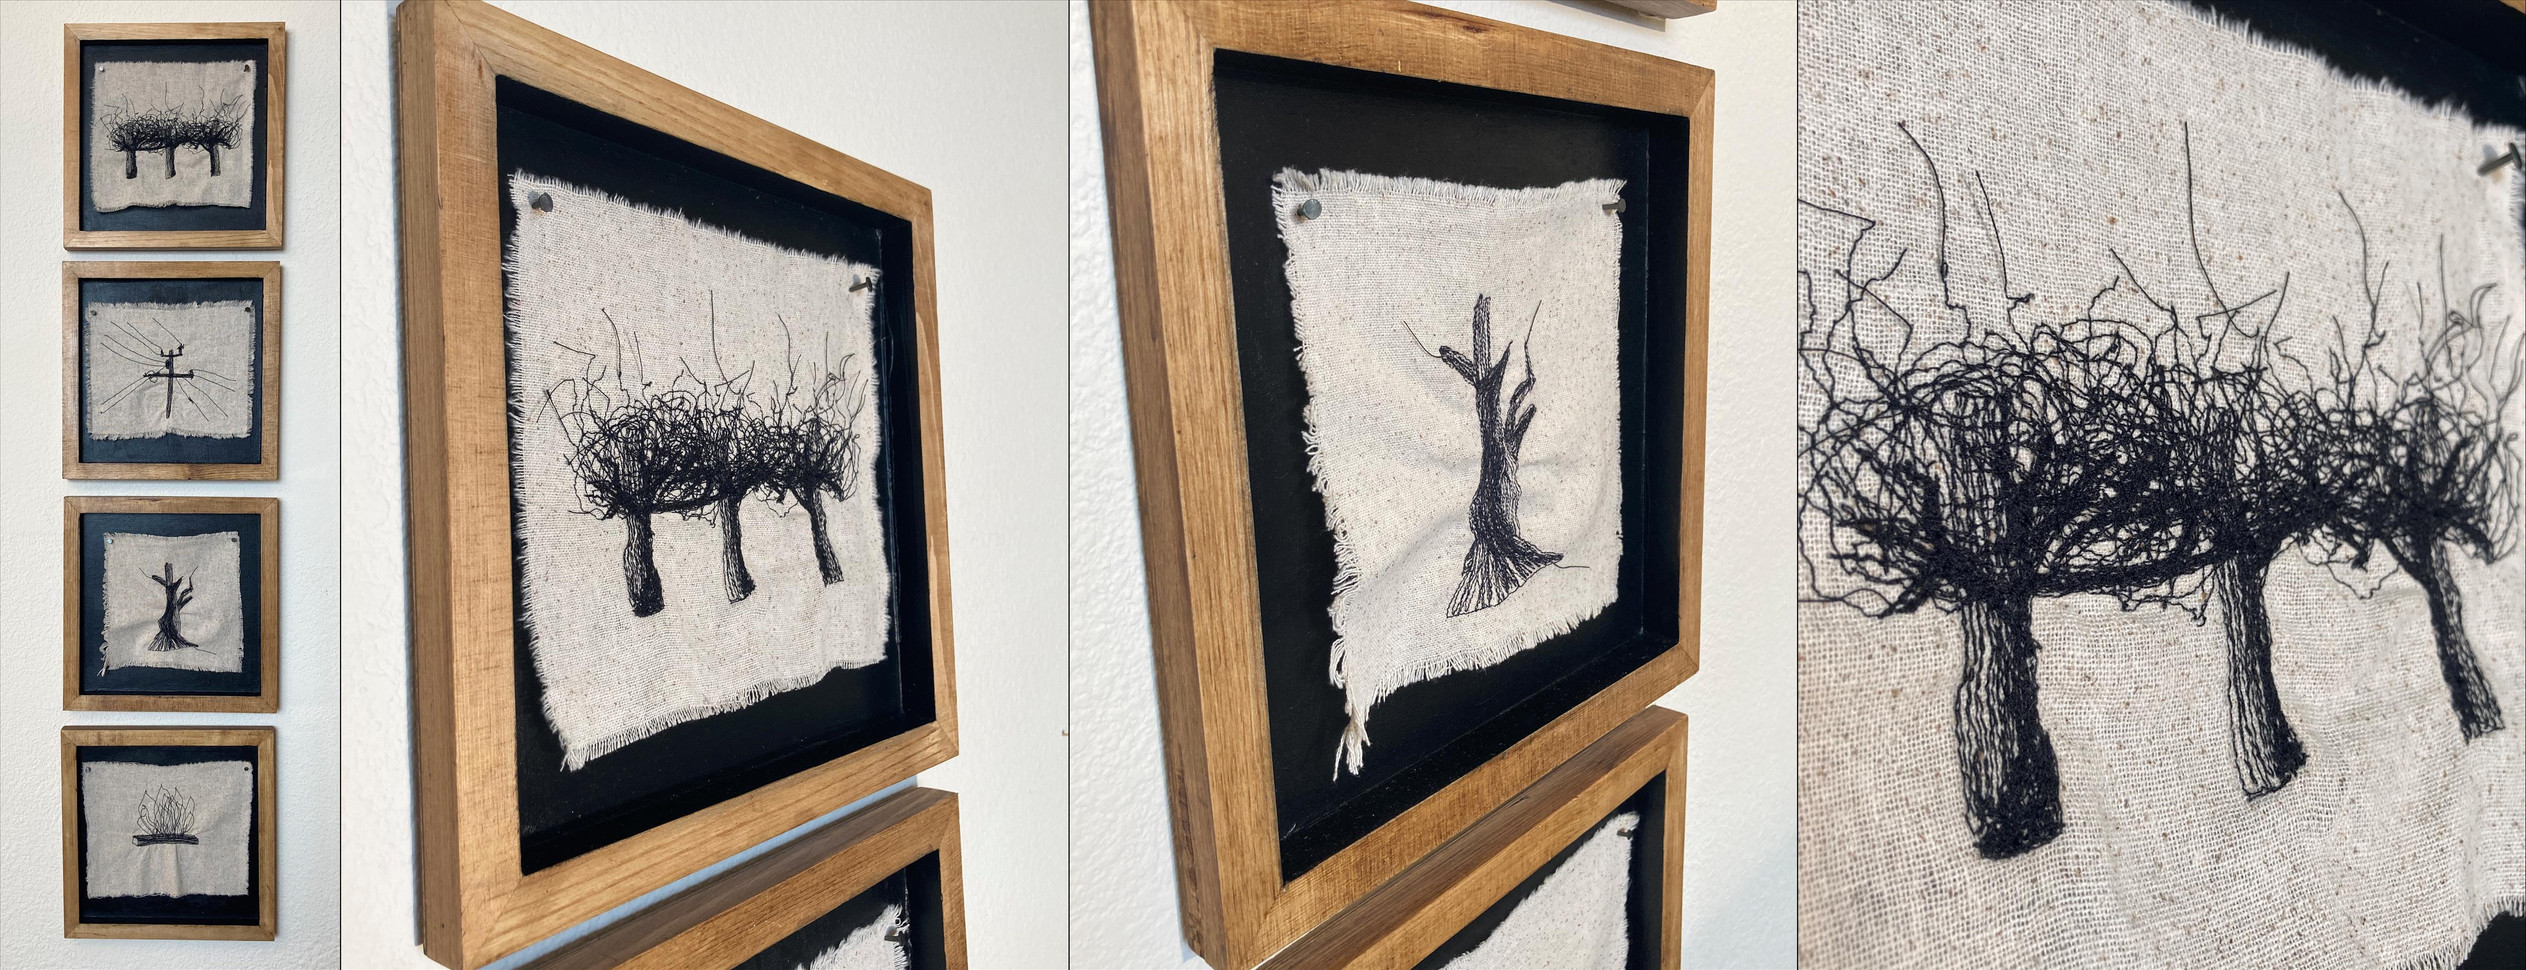 "Michelle Park (Turlock) A California Story (Grapevines in Winter) embroidered cloth on wood, 44"" x 10"" x 0.75"" $240"